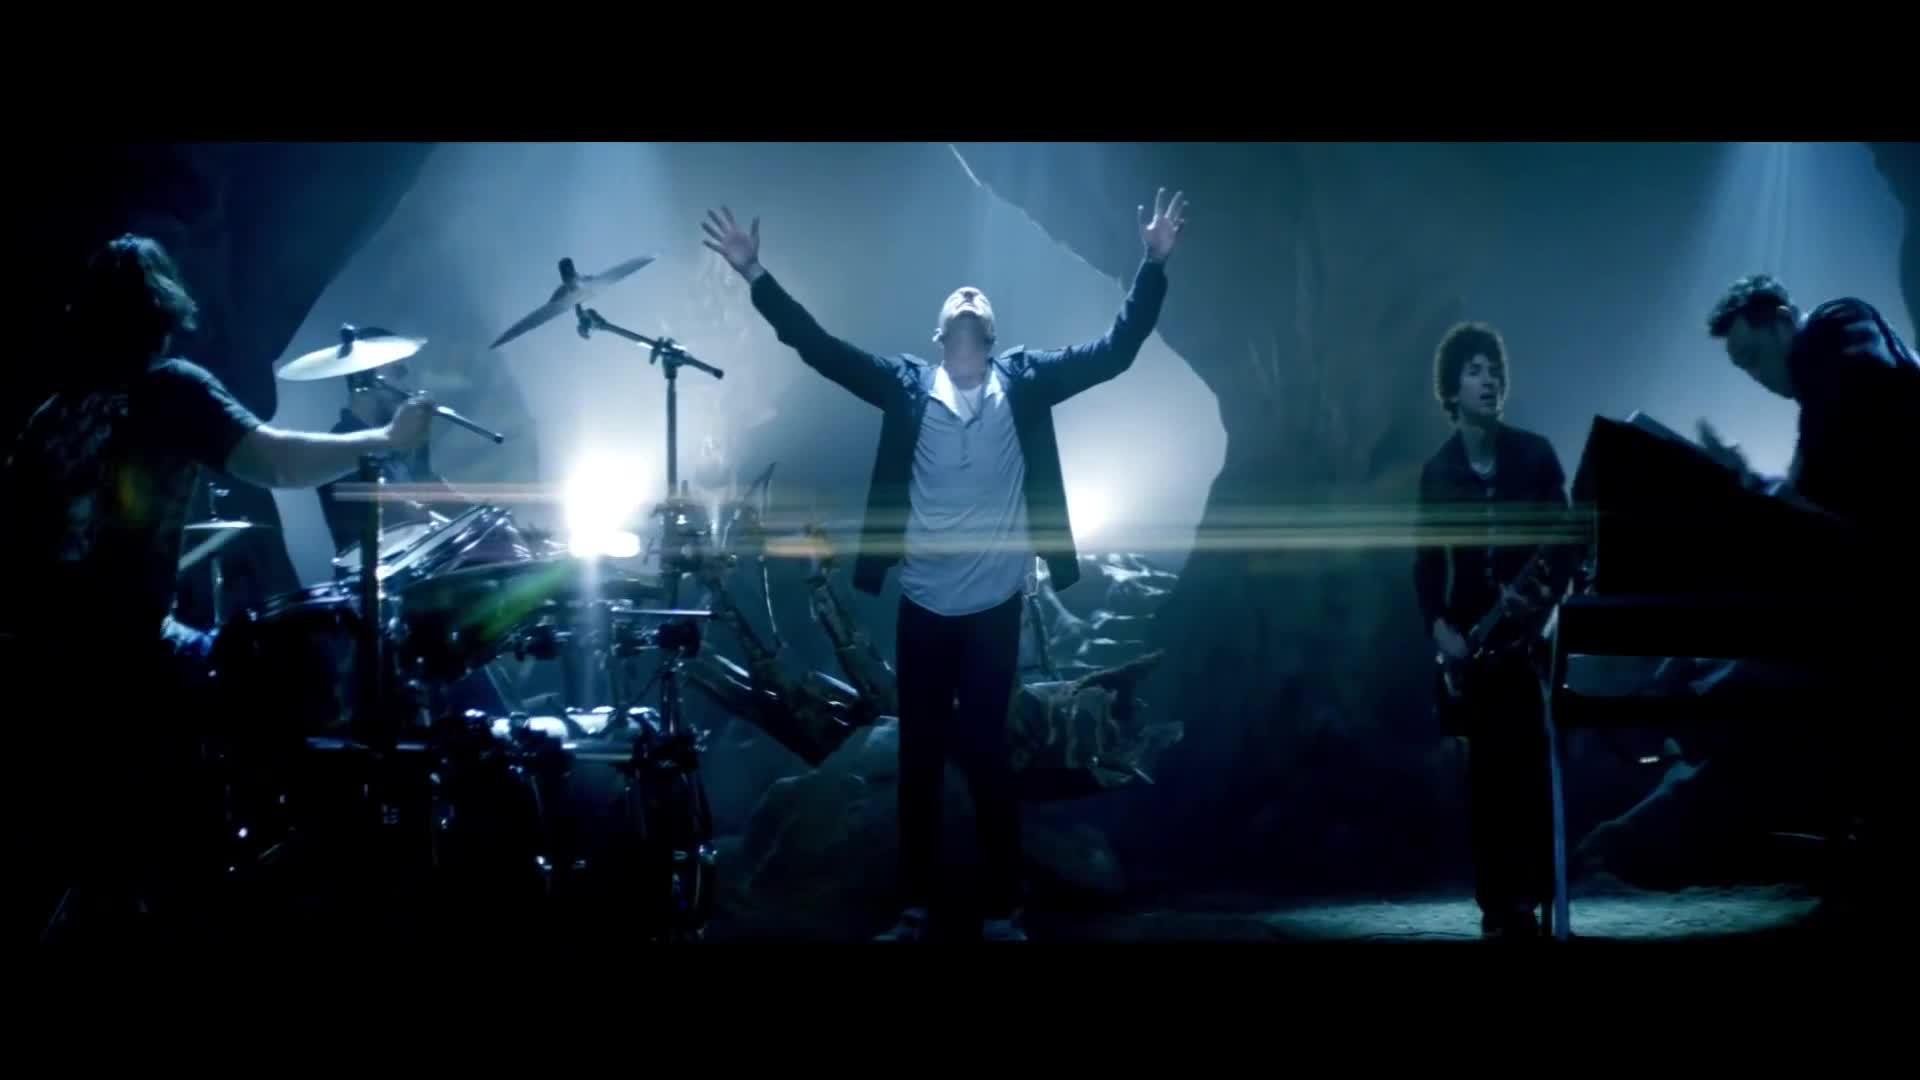 new divide (official video) - linkin park mp3